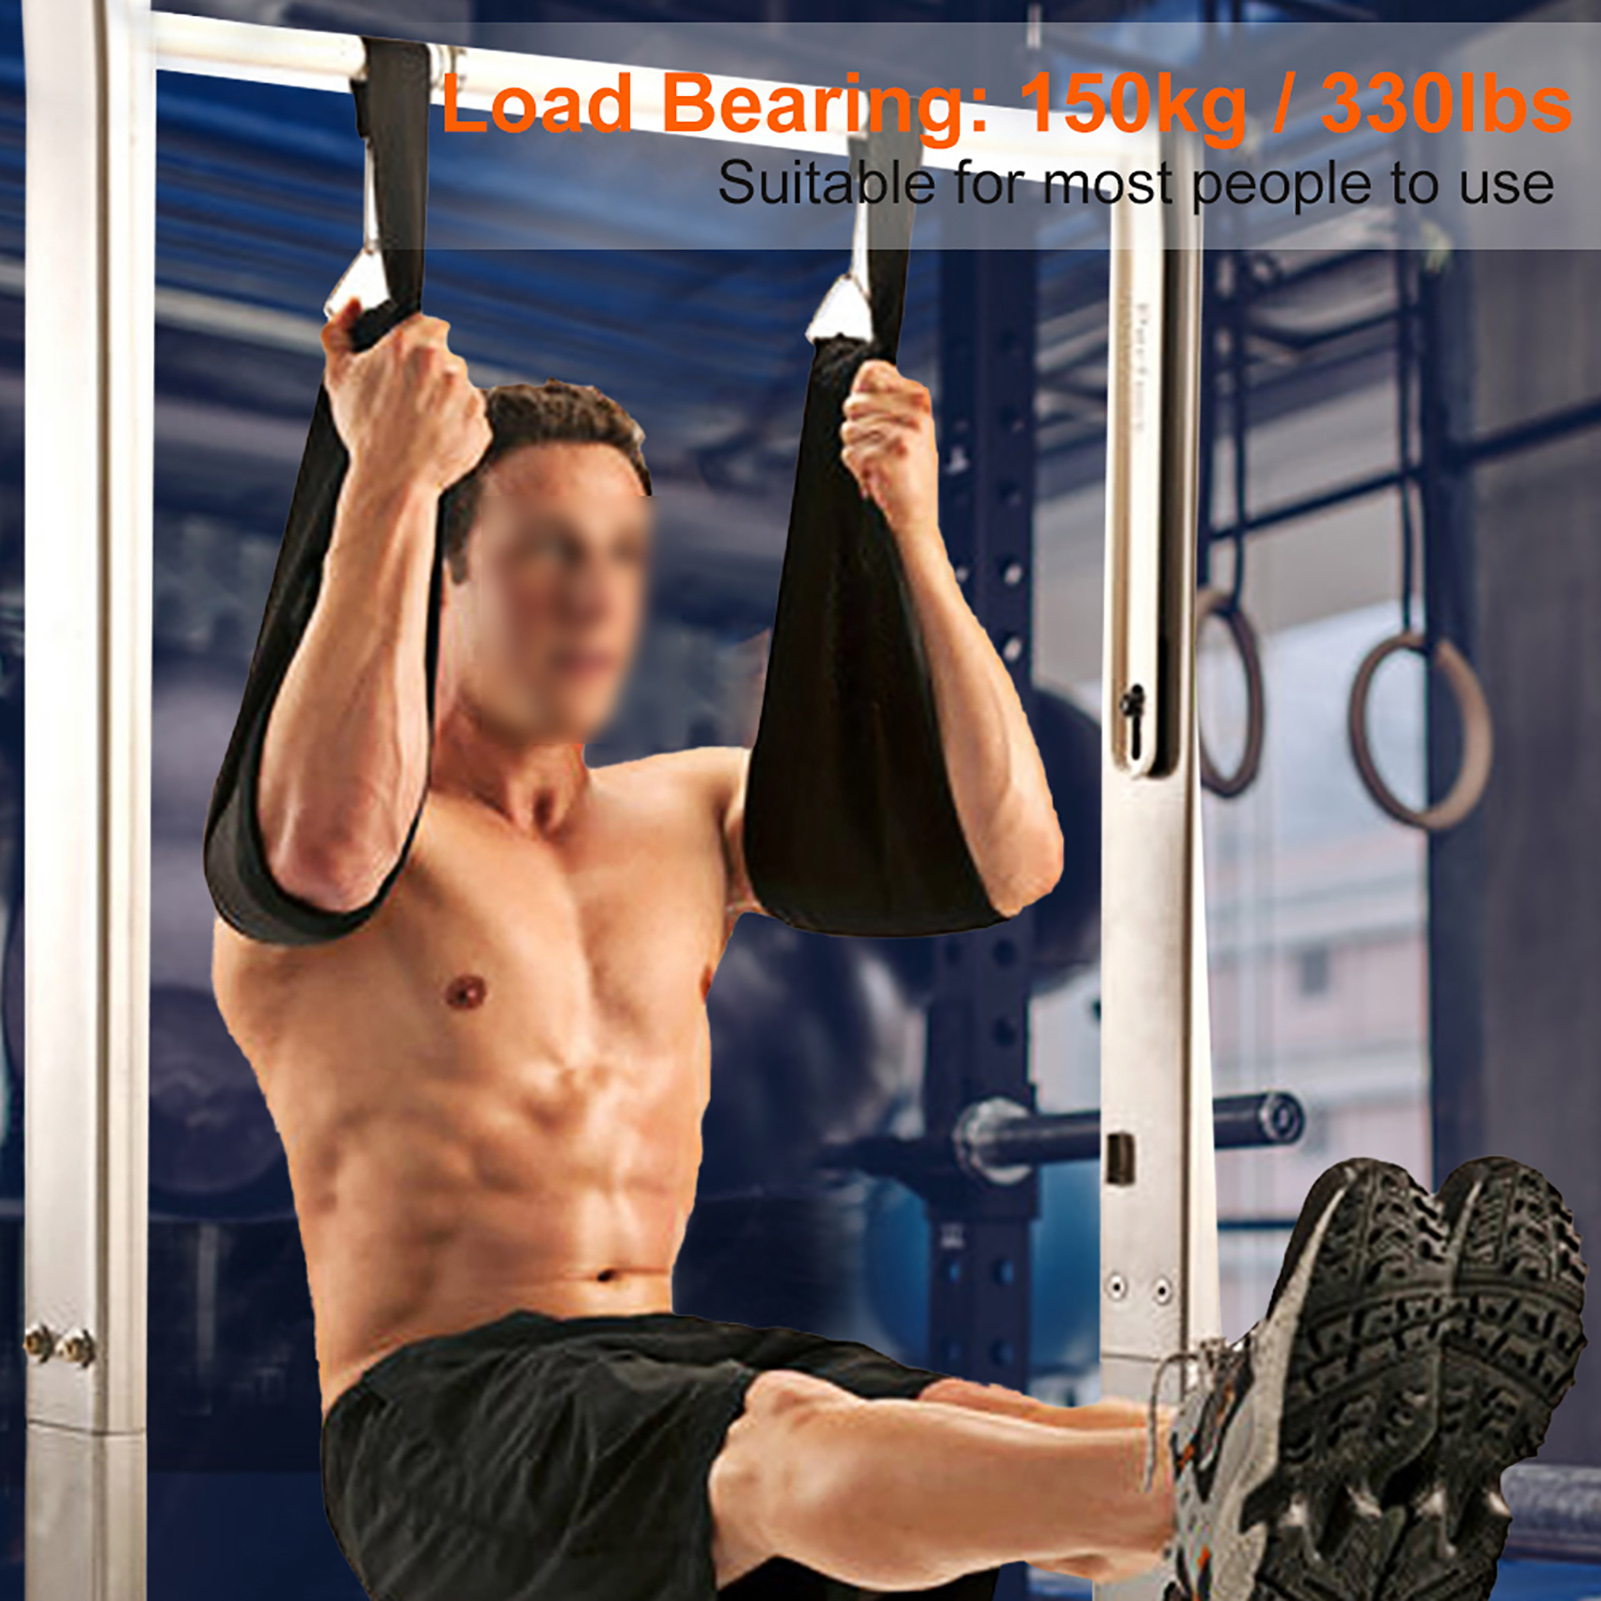 Home-Gym-Cable-Attachment-Exercise-Machine-Tricep-Rope-V-Pull-Up-Bar-D-Handle-US thumbnail 21